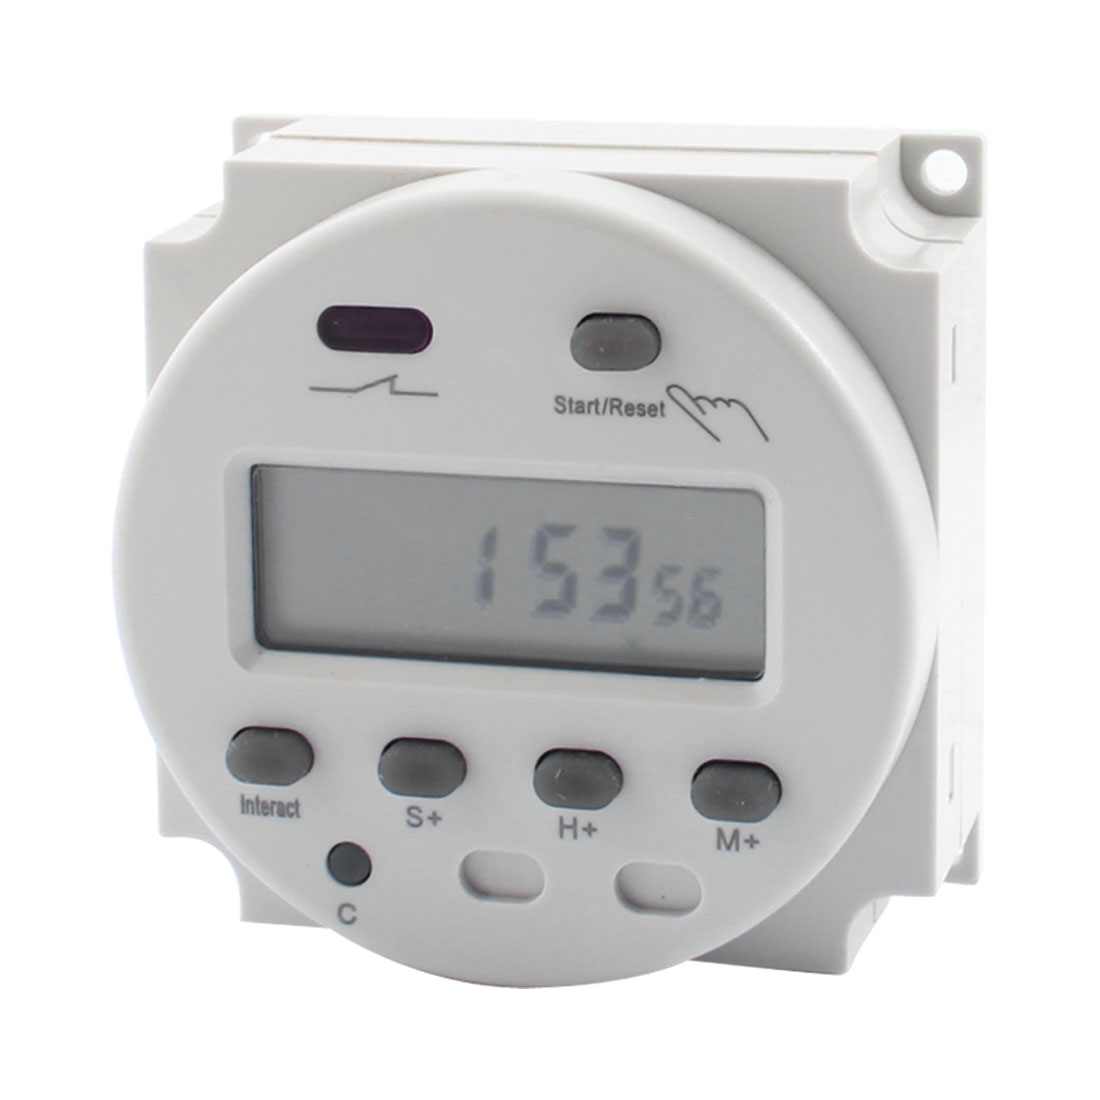 Mini CN102 AC/DC 12V LCD Digit Display Programmable Countdown Timer Control Time Switch